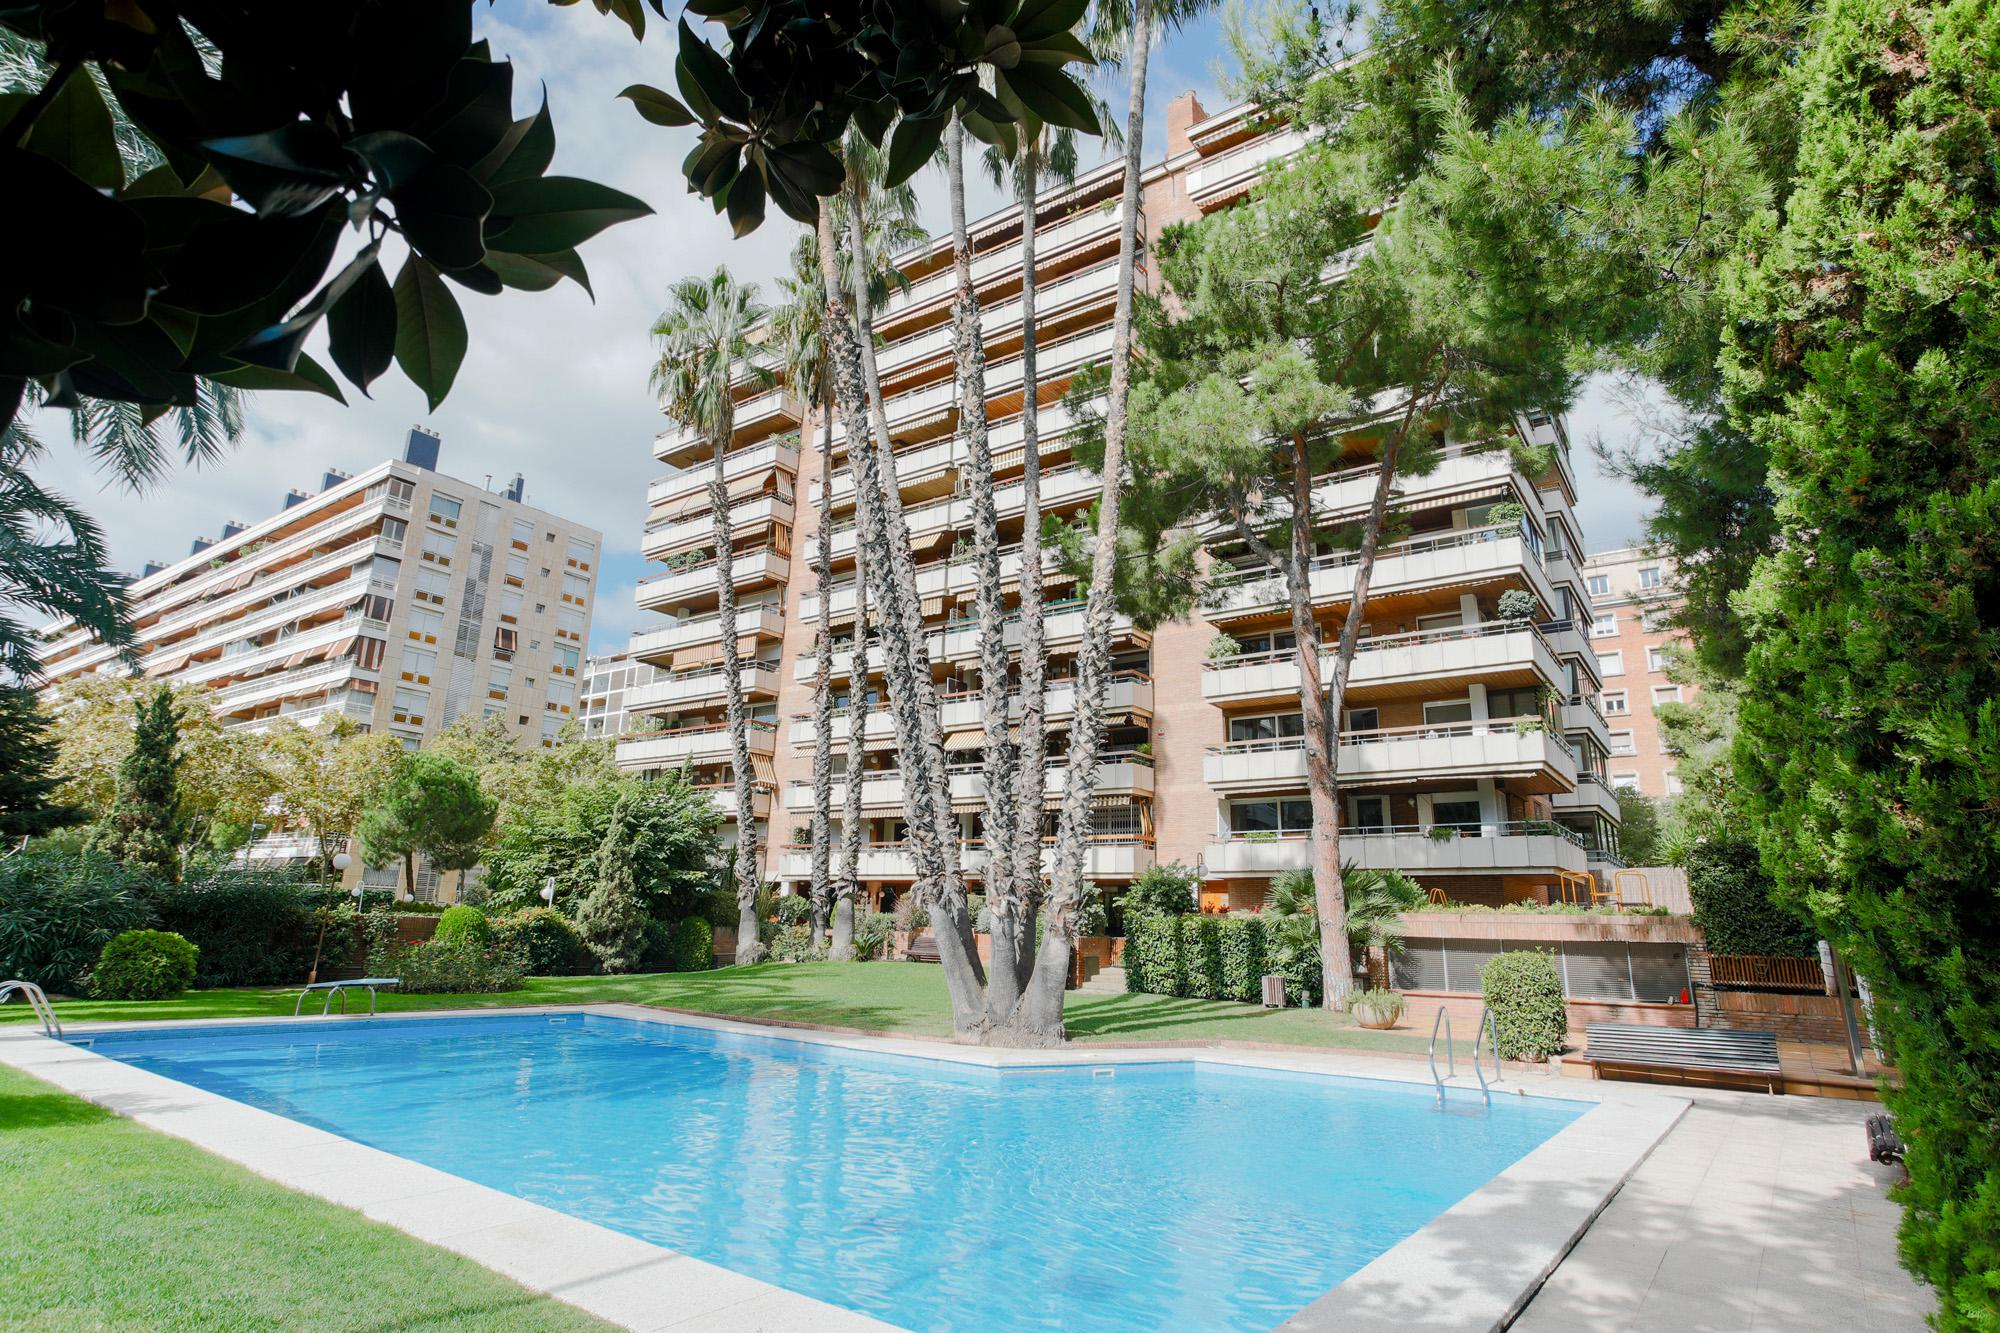 232863 Apartment for sale in Les Corts, Pedralbes 6